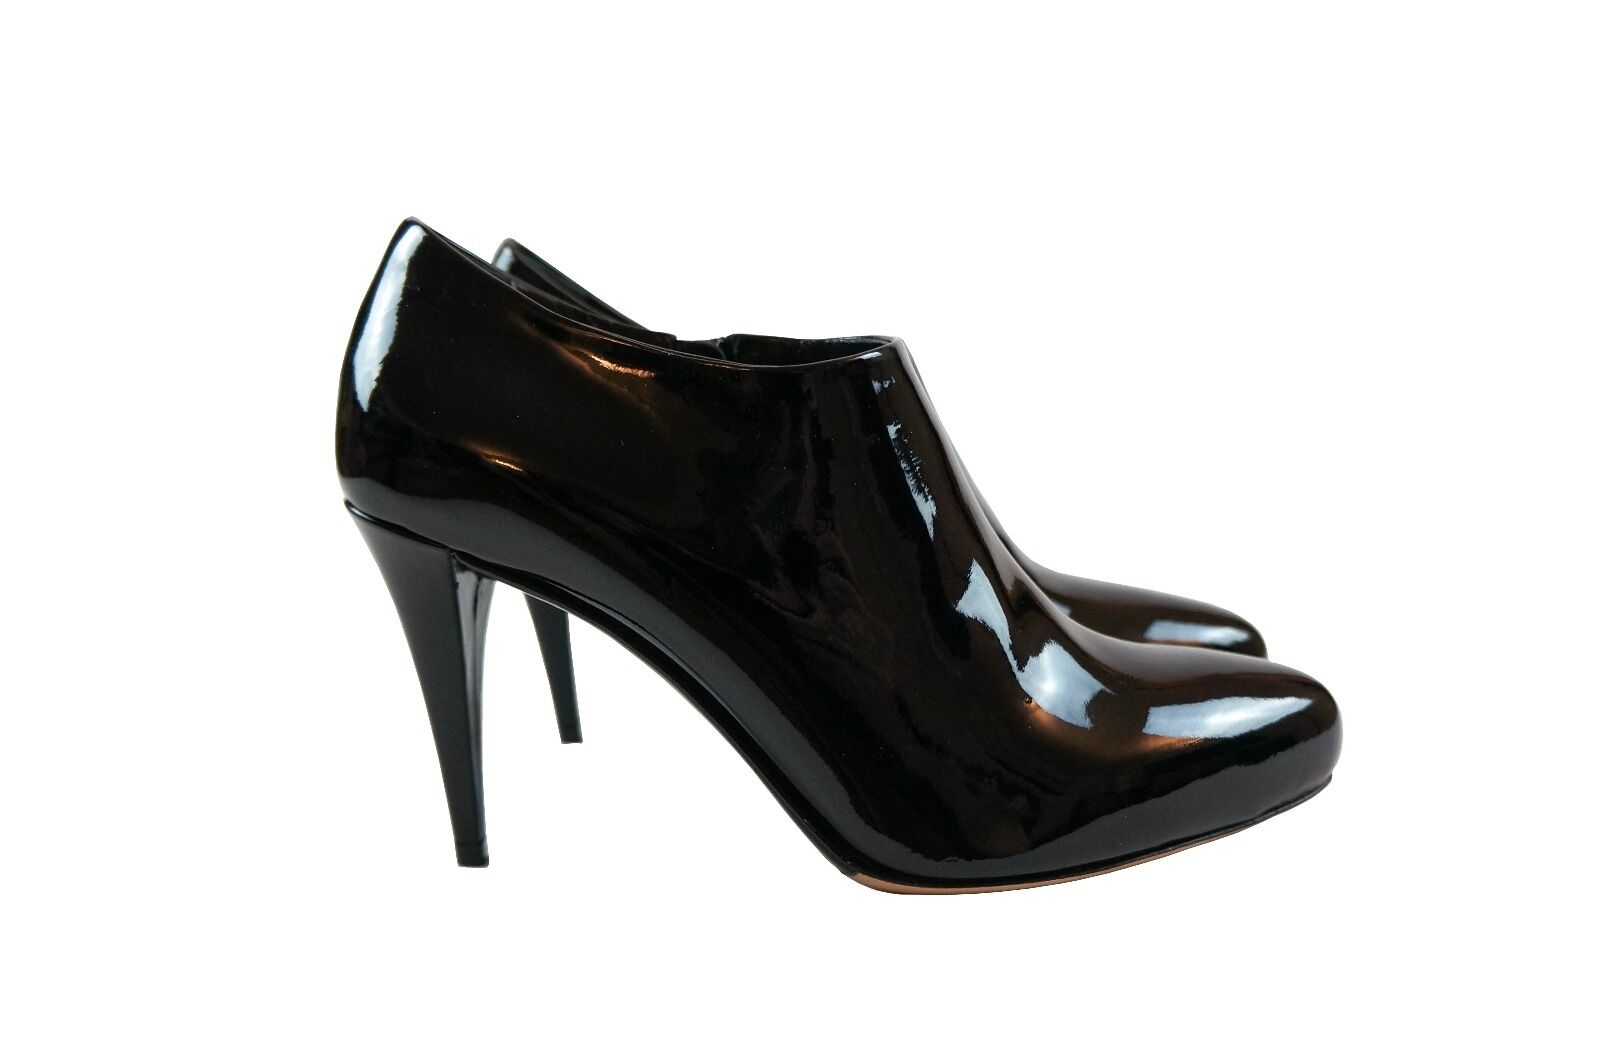 Genuine Miu Miu patent leather ankle boots size 37_New